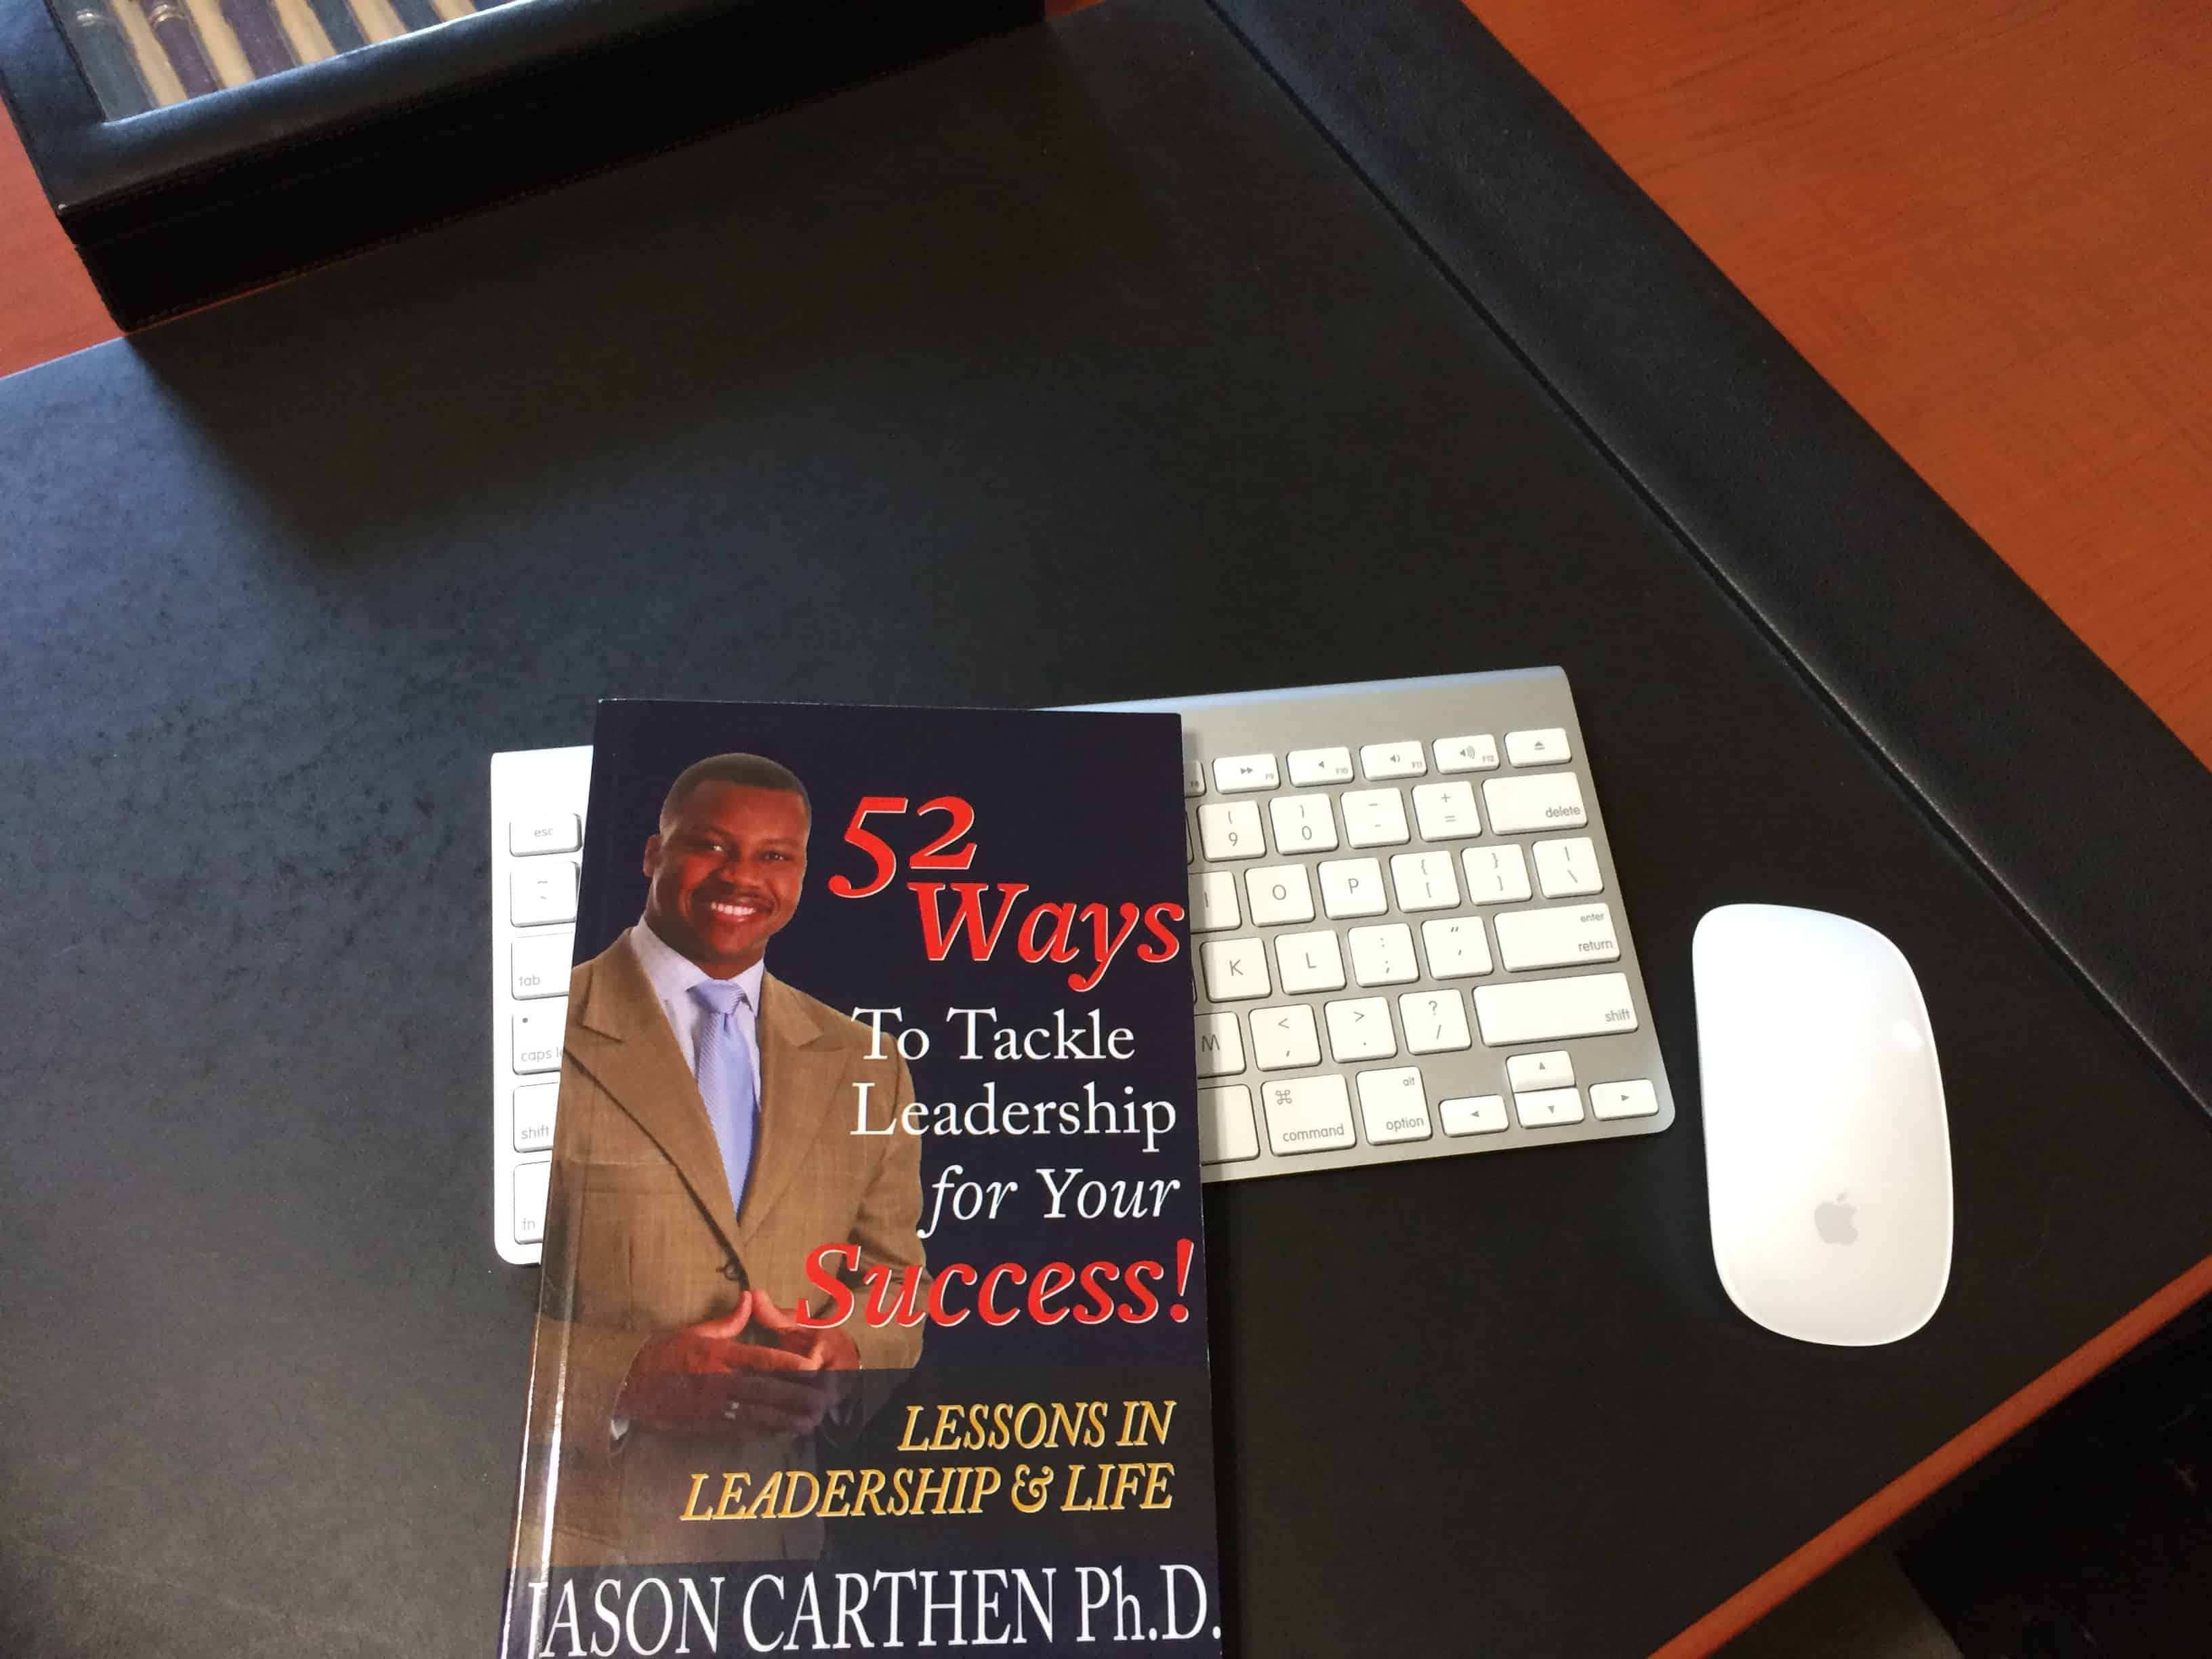 Dr. Jason Carthen: 52 Ways Desk image